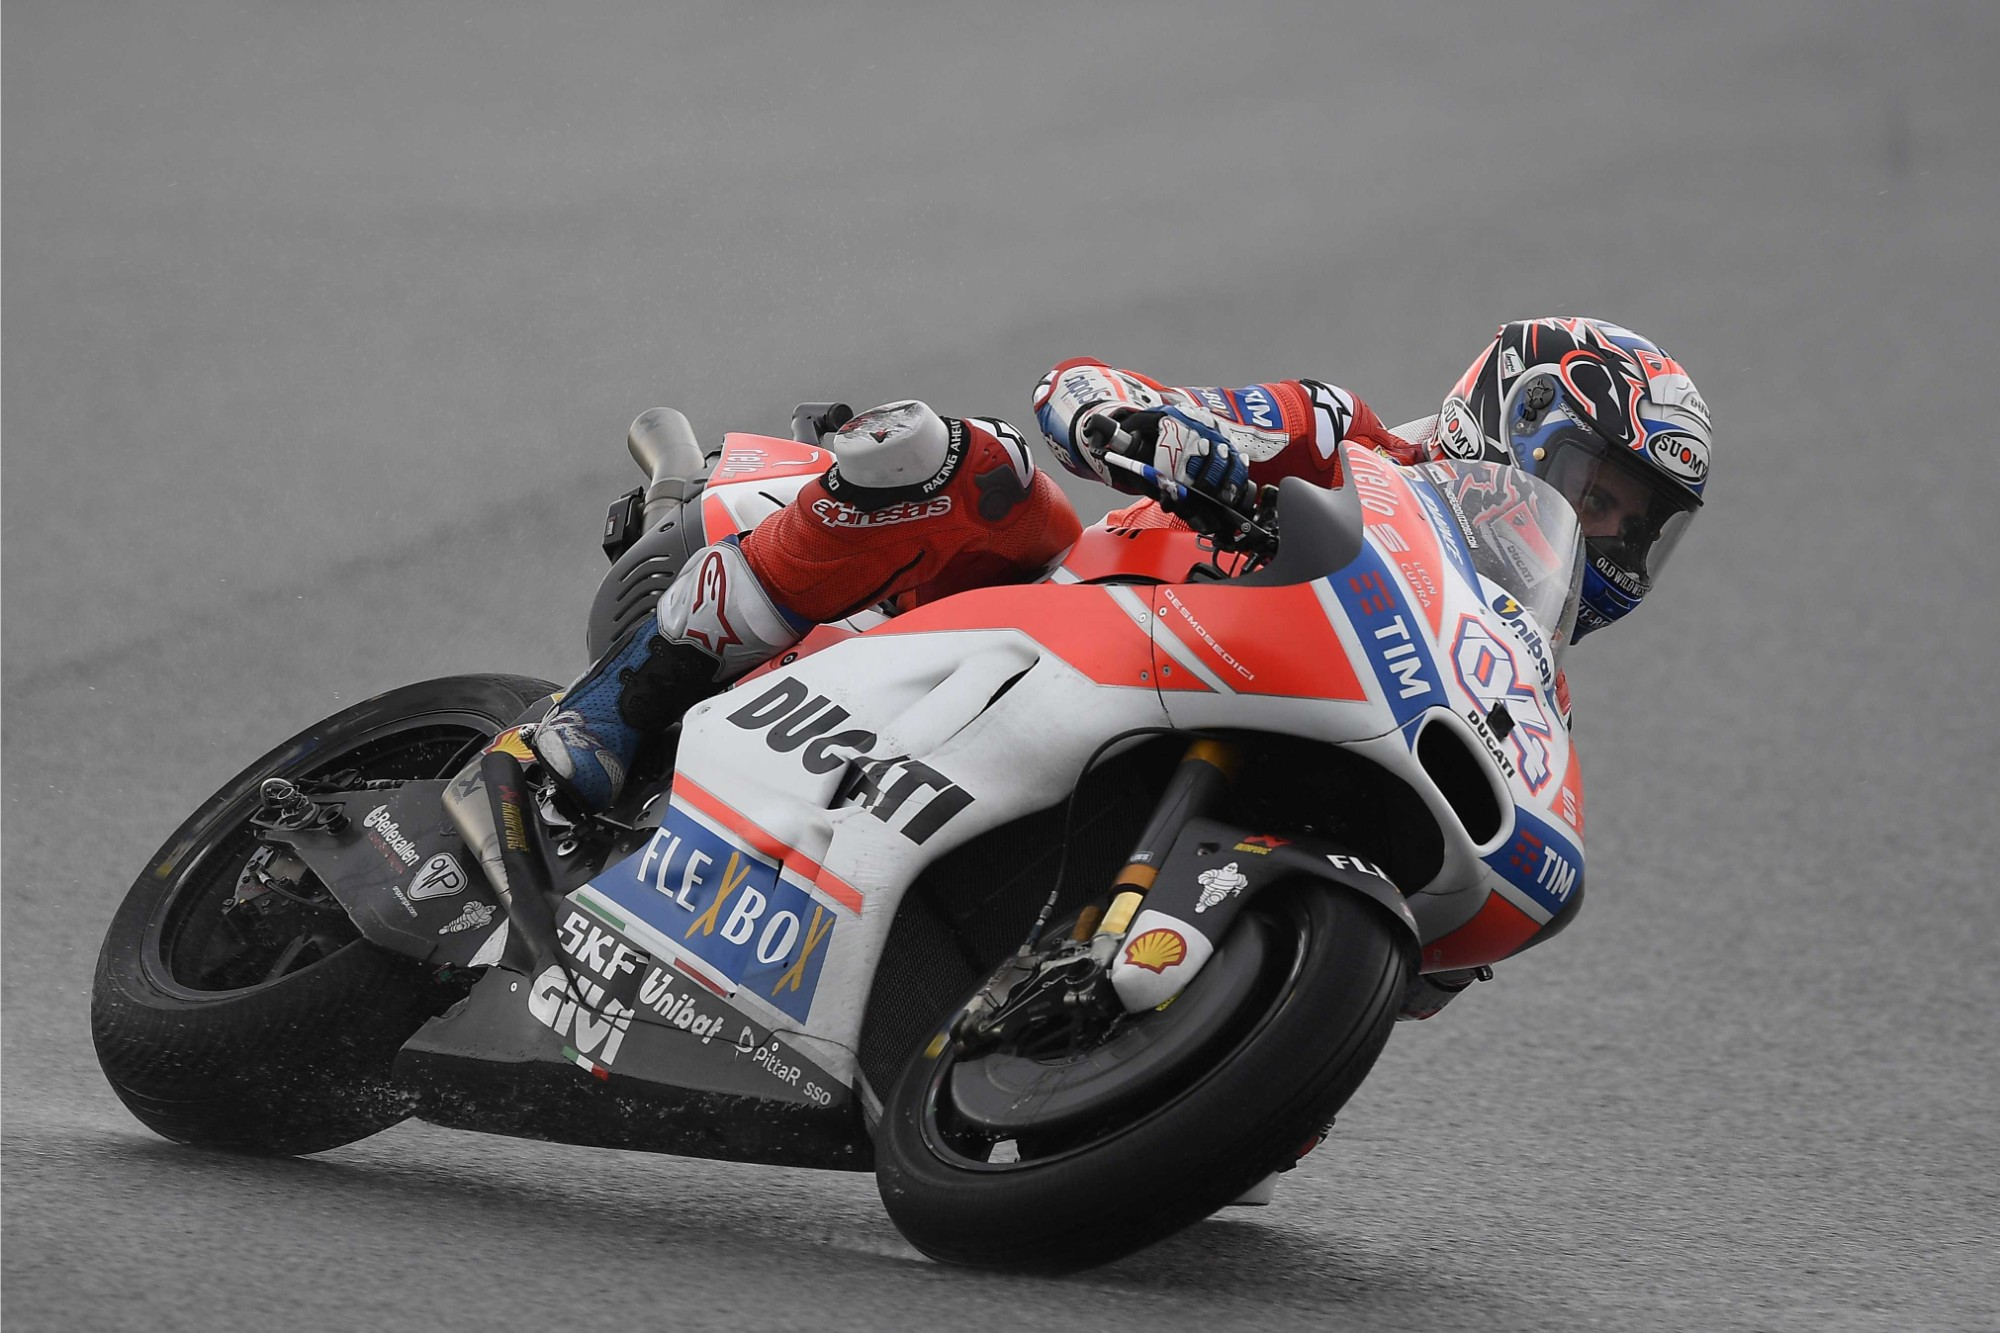 Motogp Andrea Dovizioso Fastest In The Dry And The Wet Friday At Sepang Updated Roadracing World Magazine Motorcycle Riding Racing Tech News